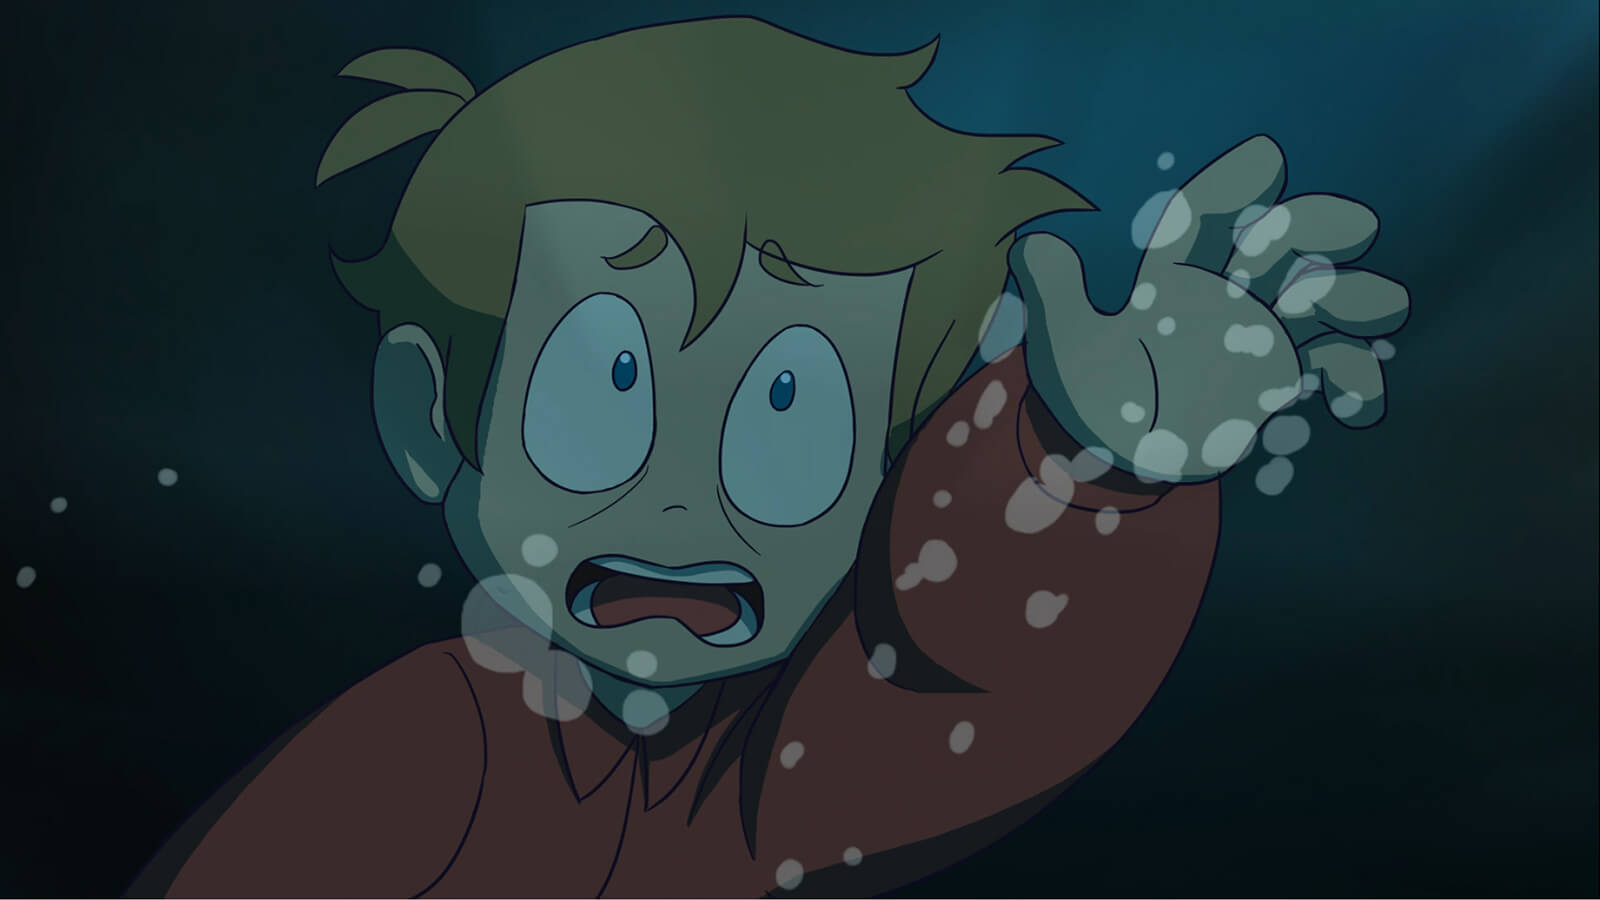 A panicked boy submerged in the ocean reaches up.